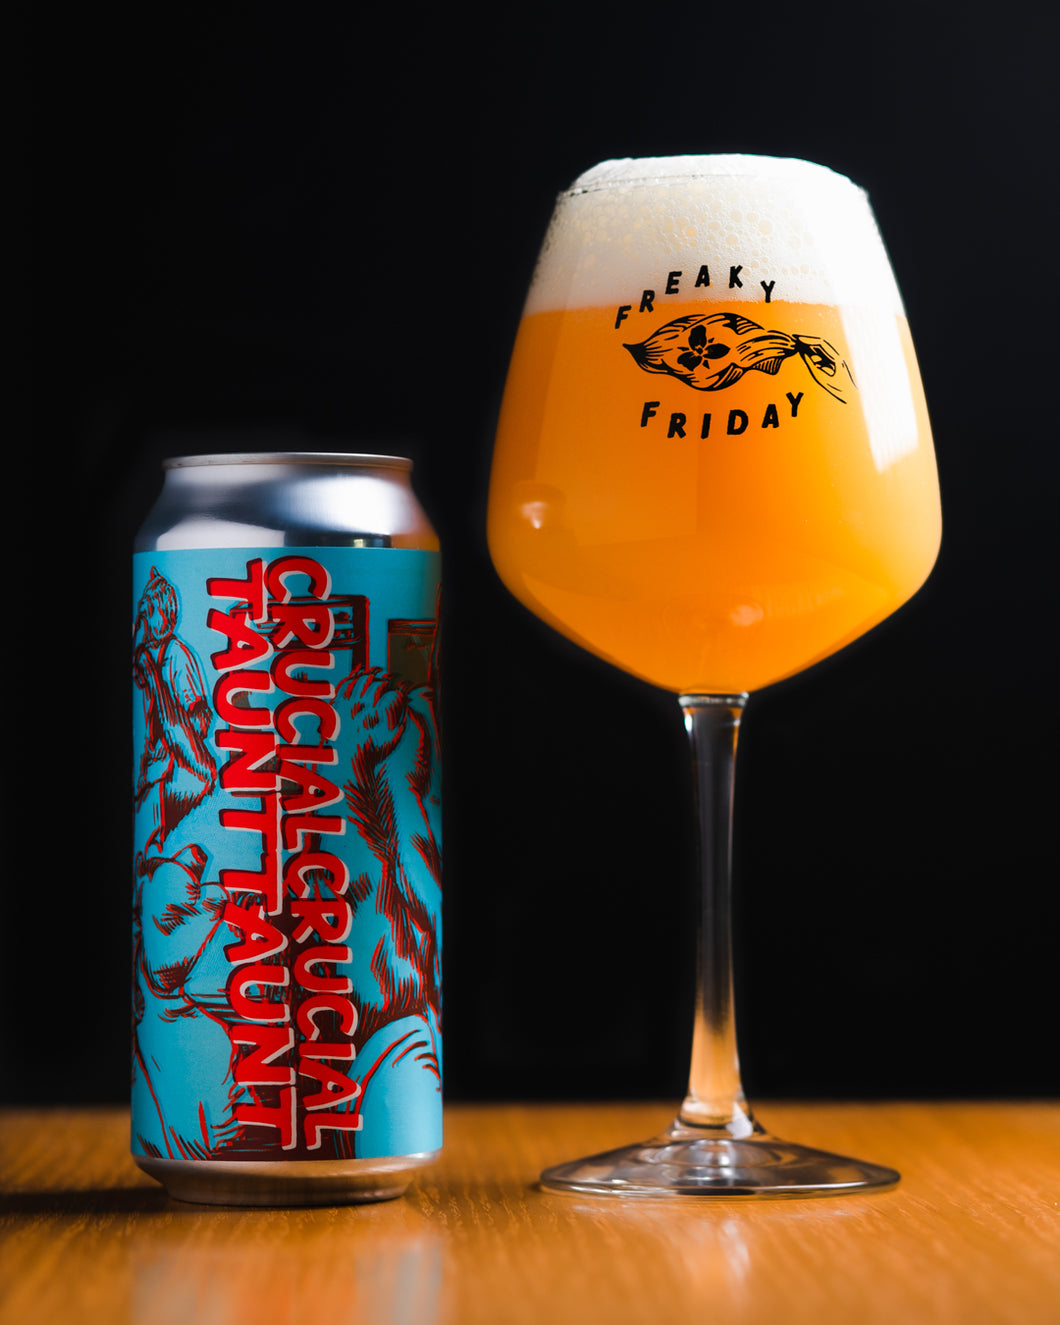 Trillium x The Veil Freaky Friday Glass